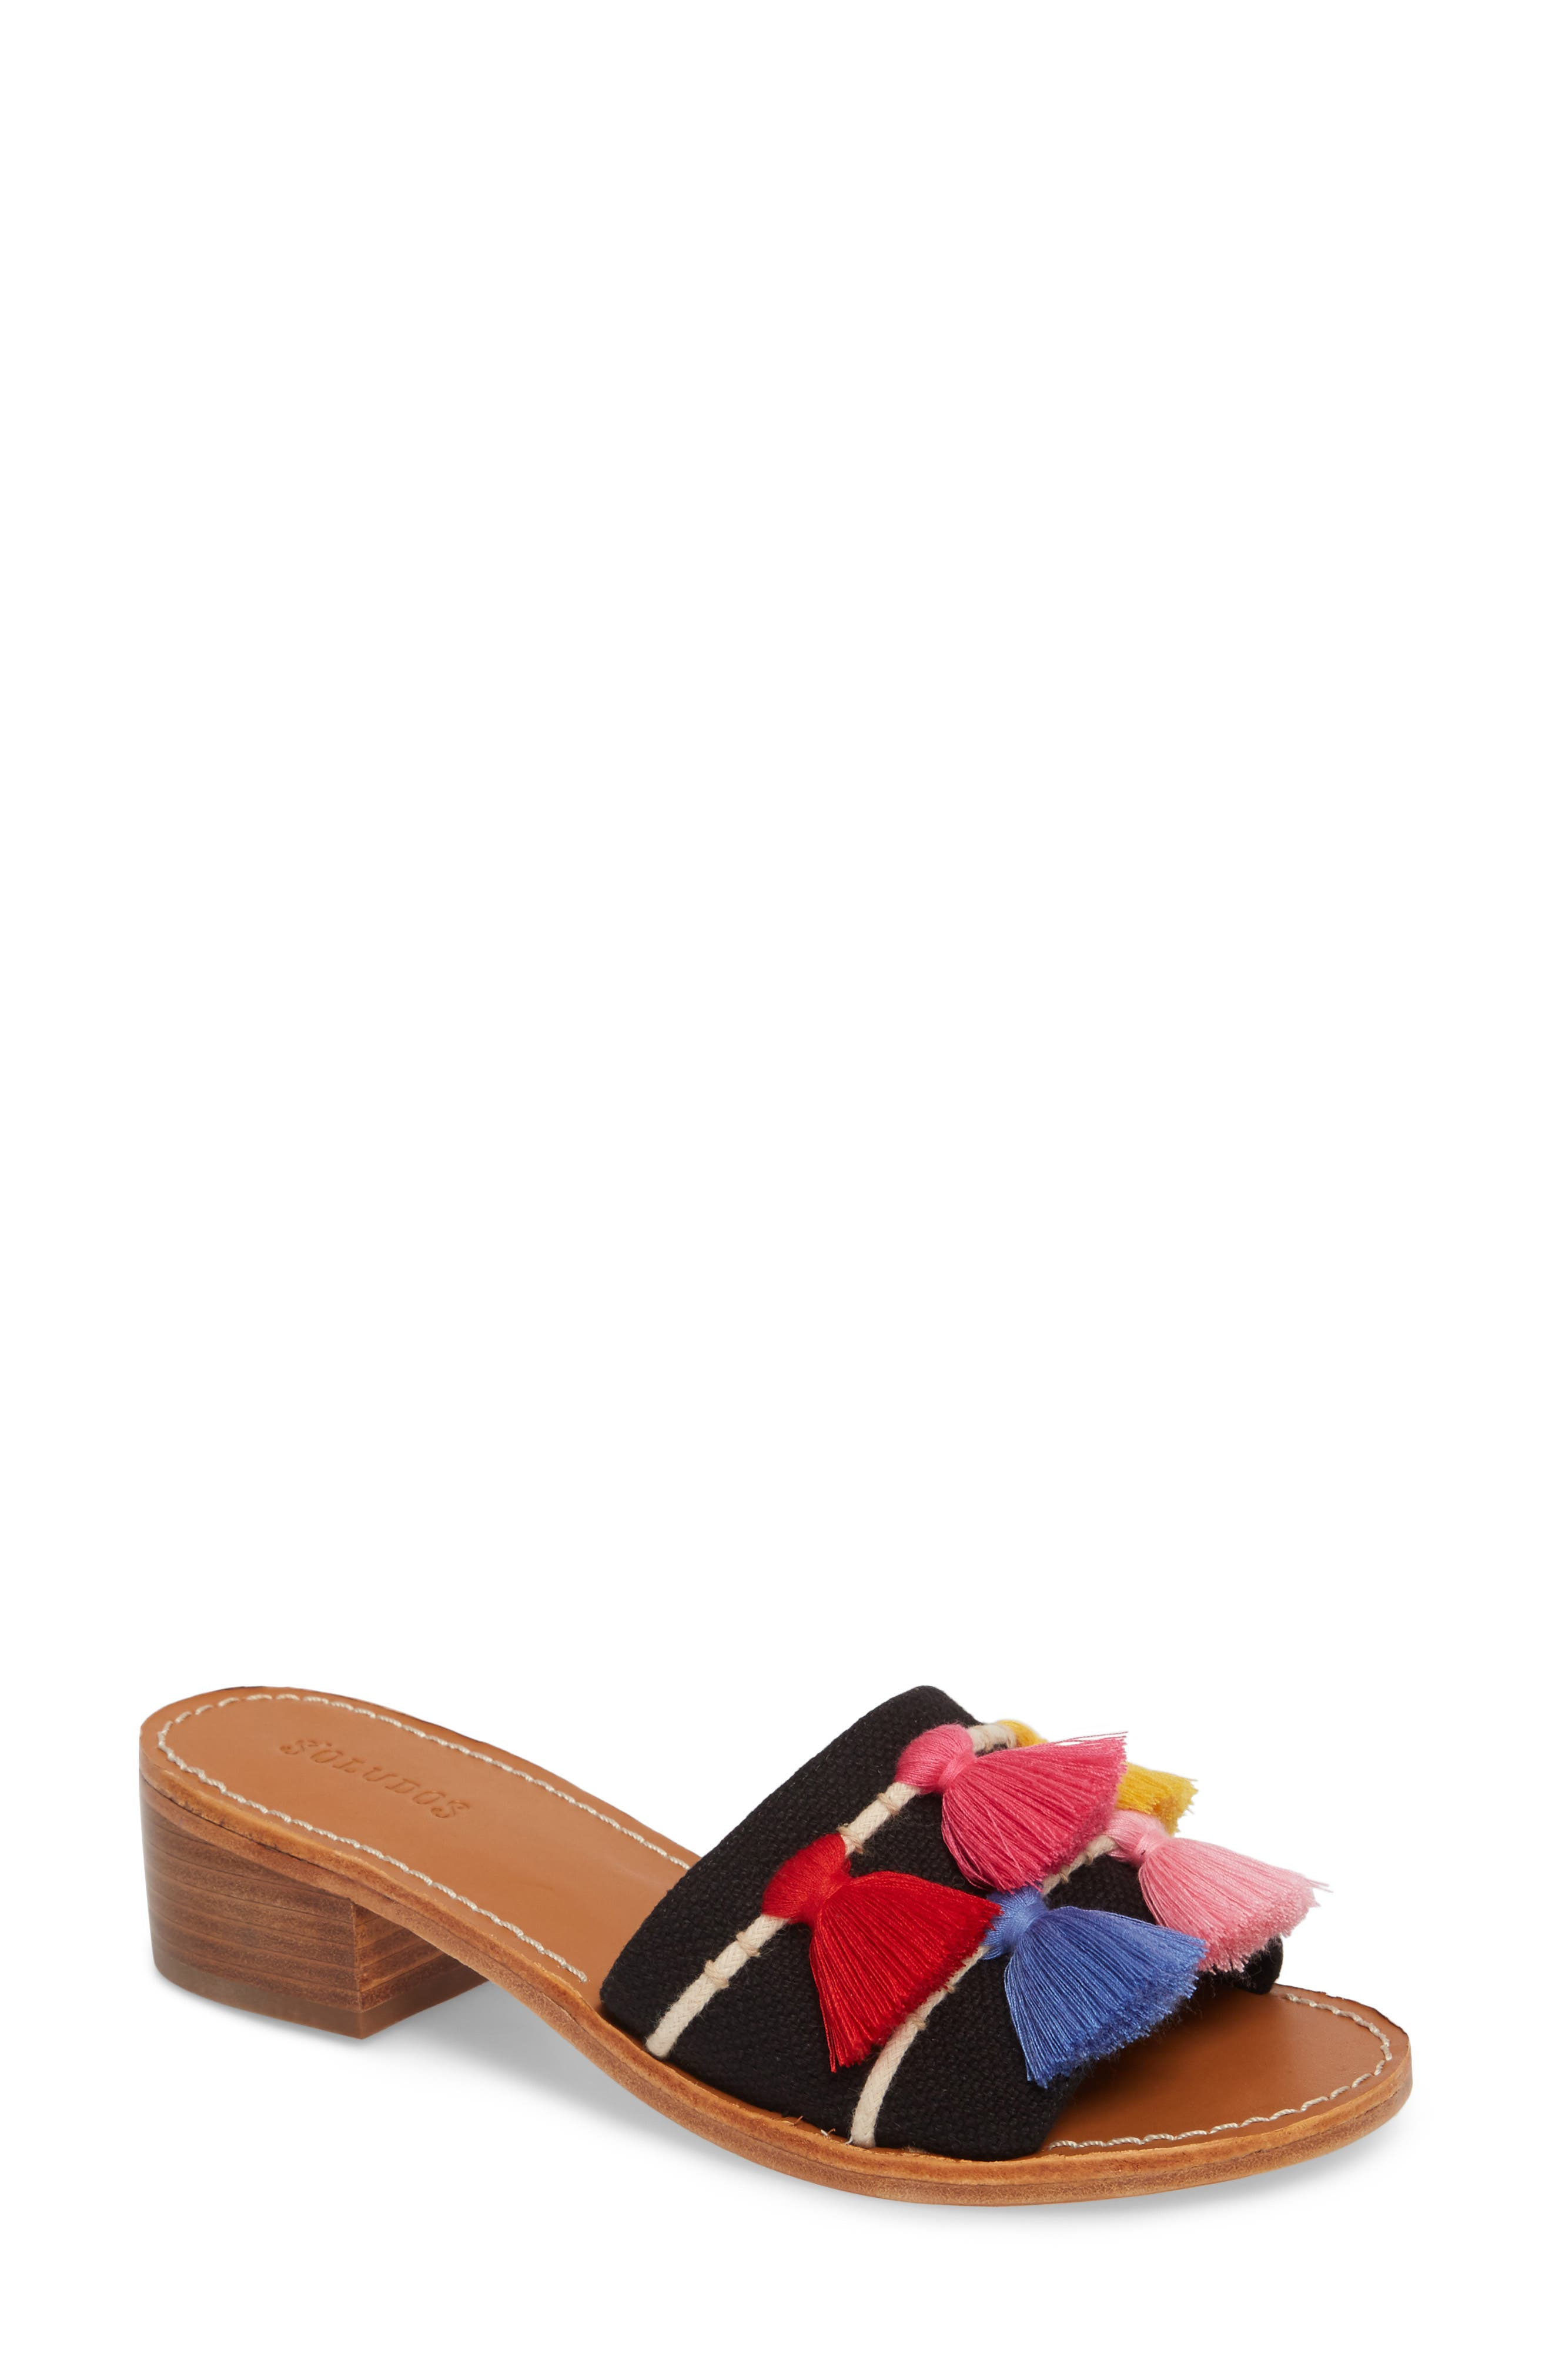 Alternate Image 1 Selected - Soludos Tassel City Sandal (Women)